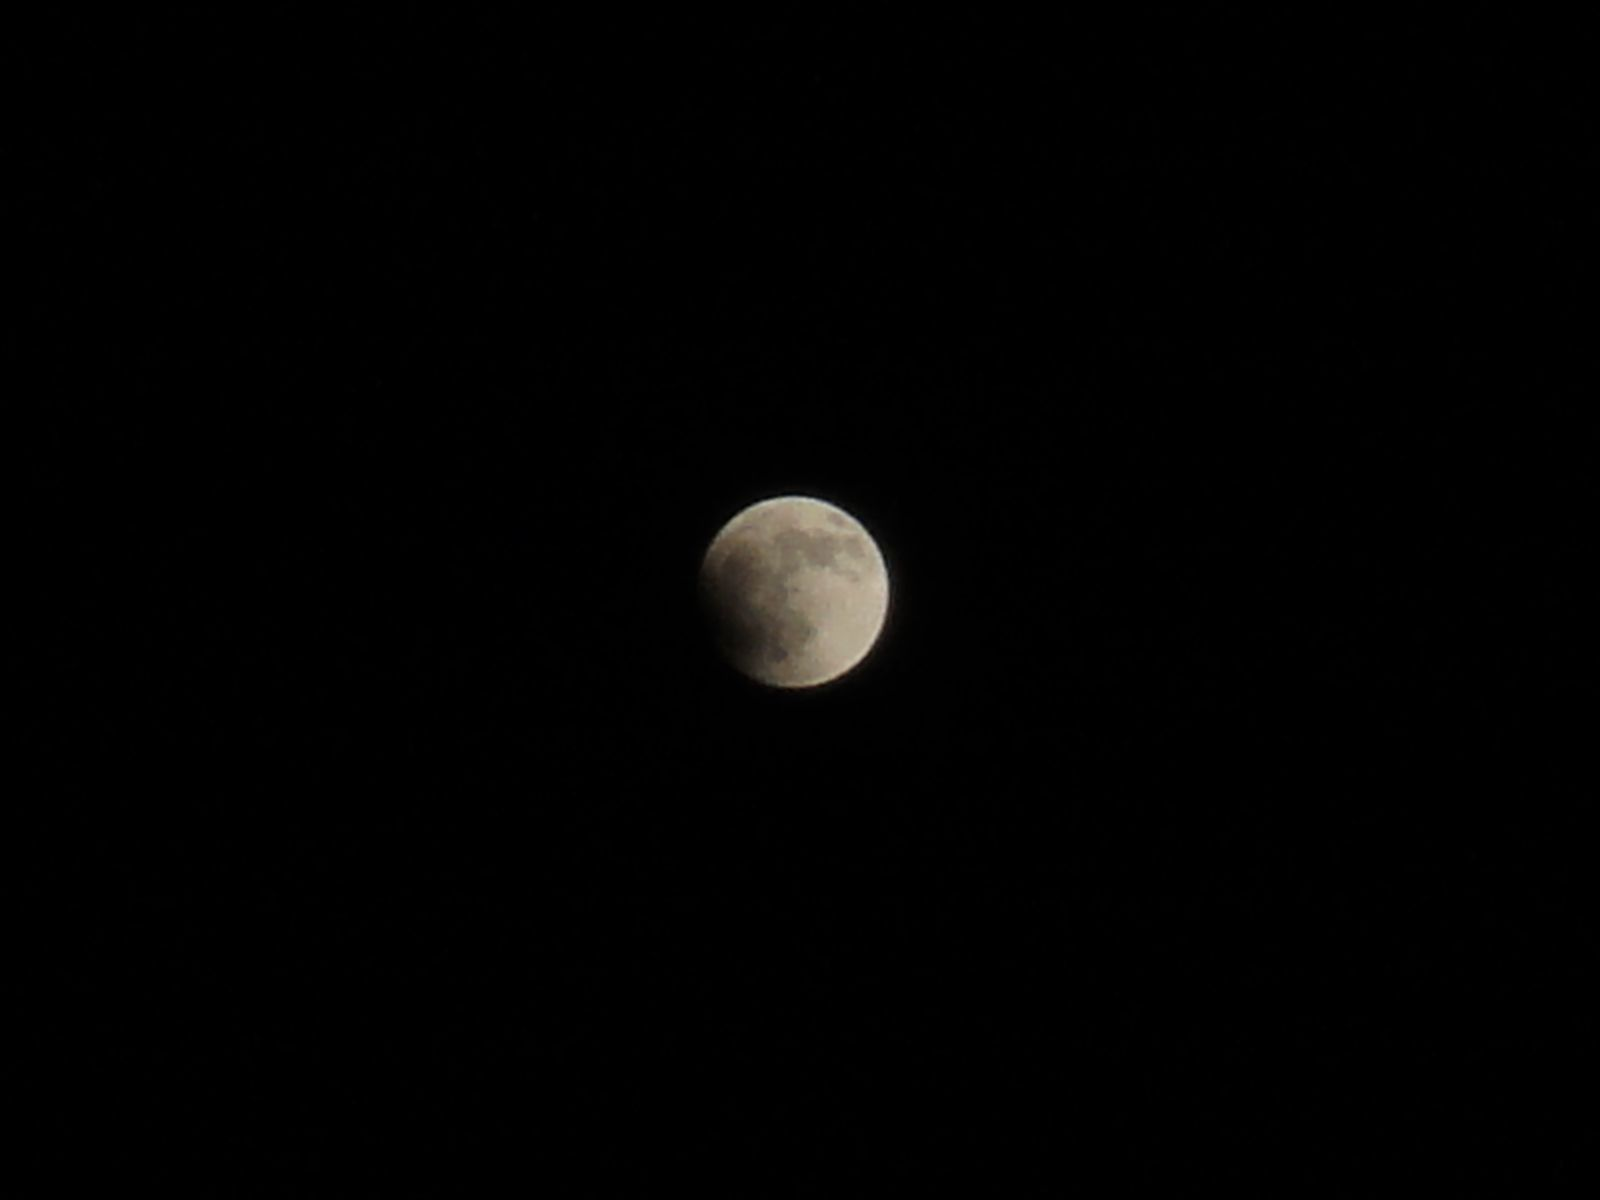 lunar_eclipse_012.jpg